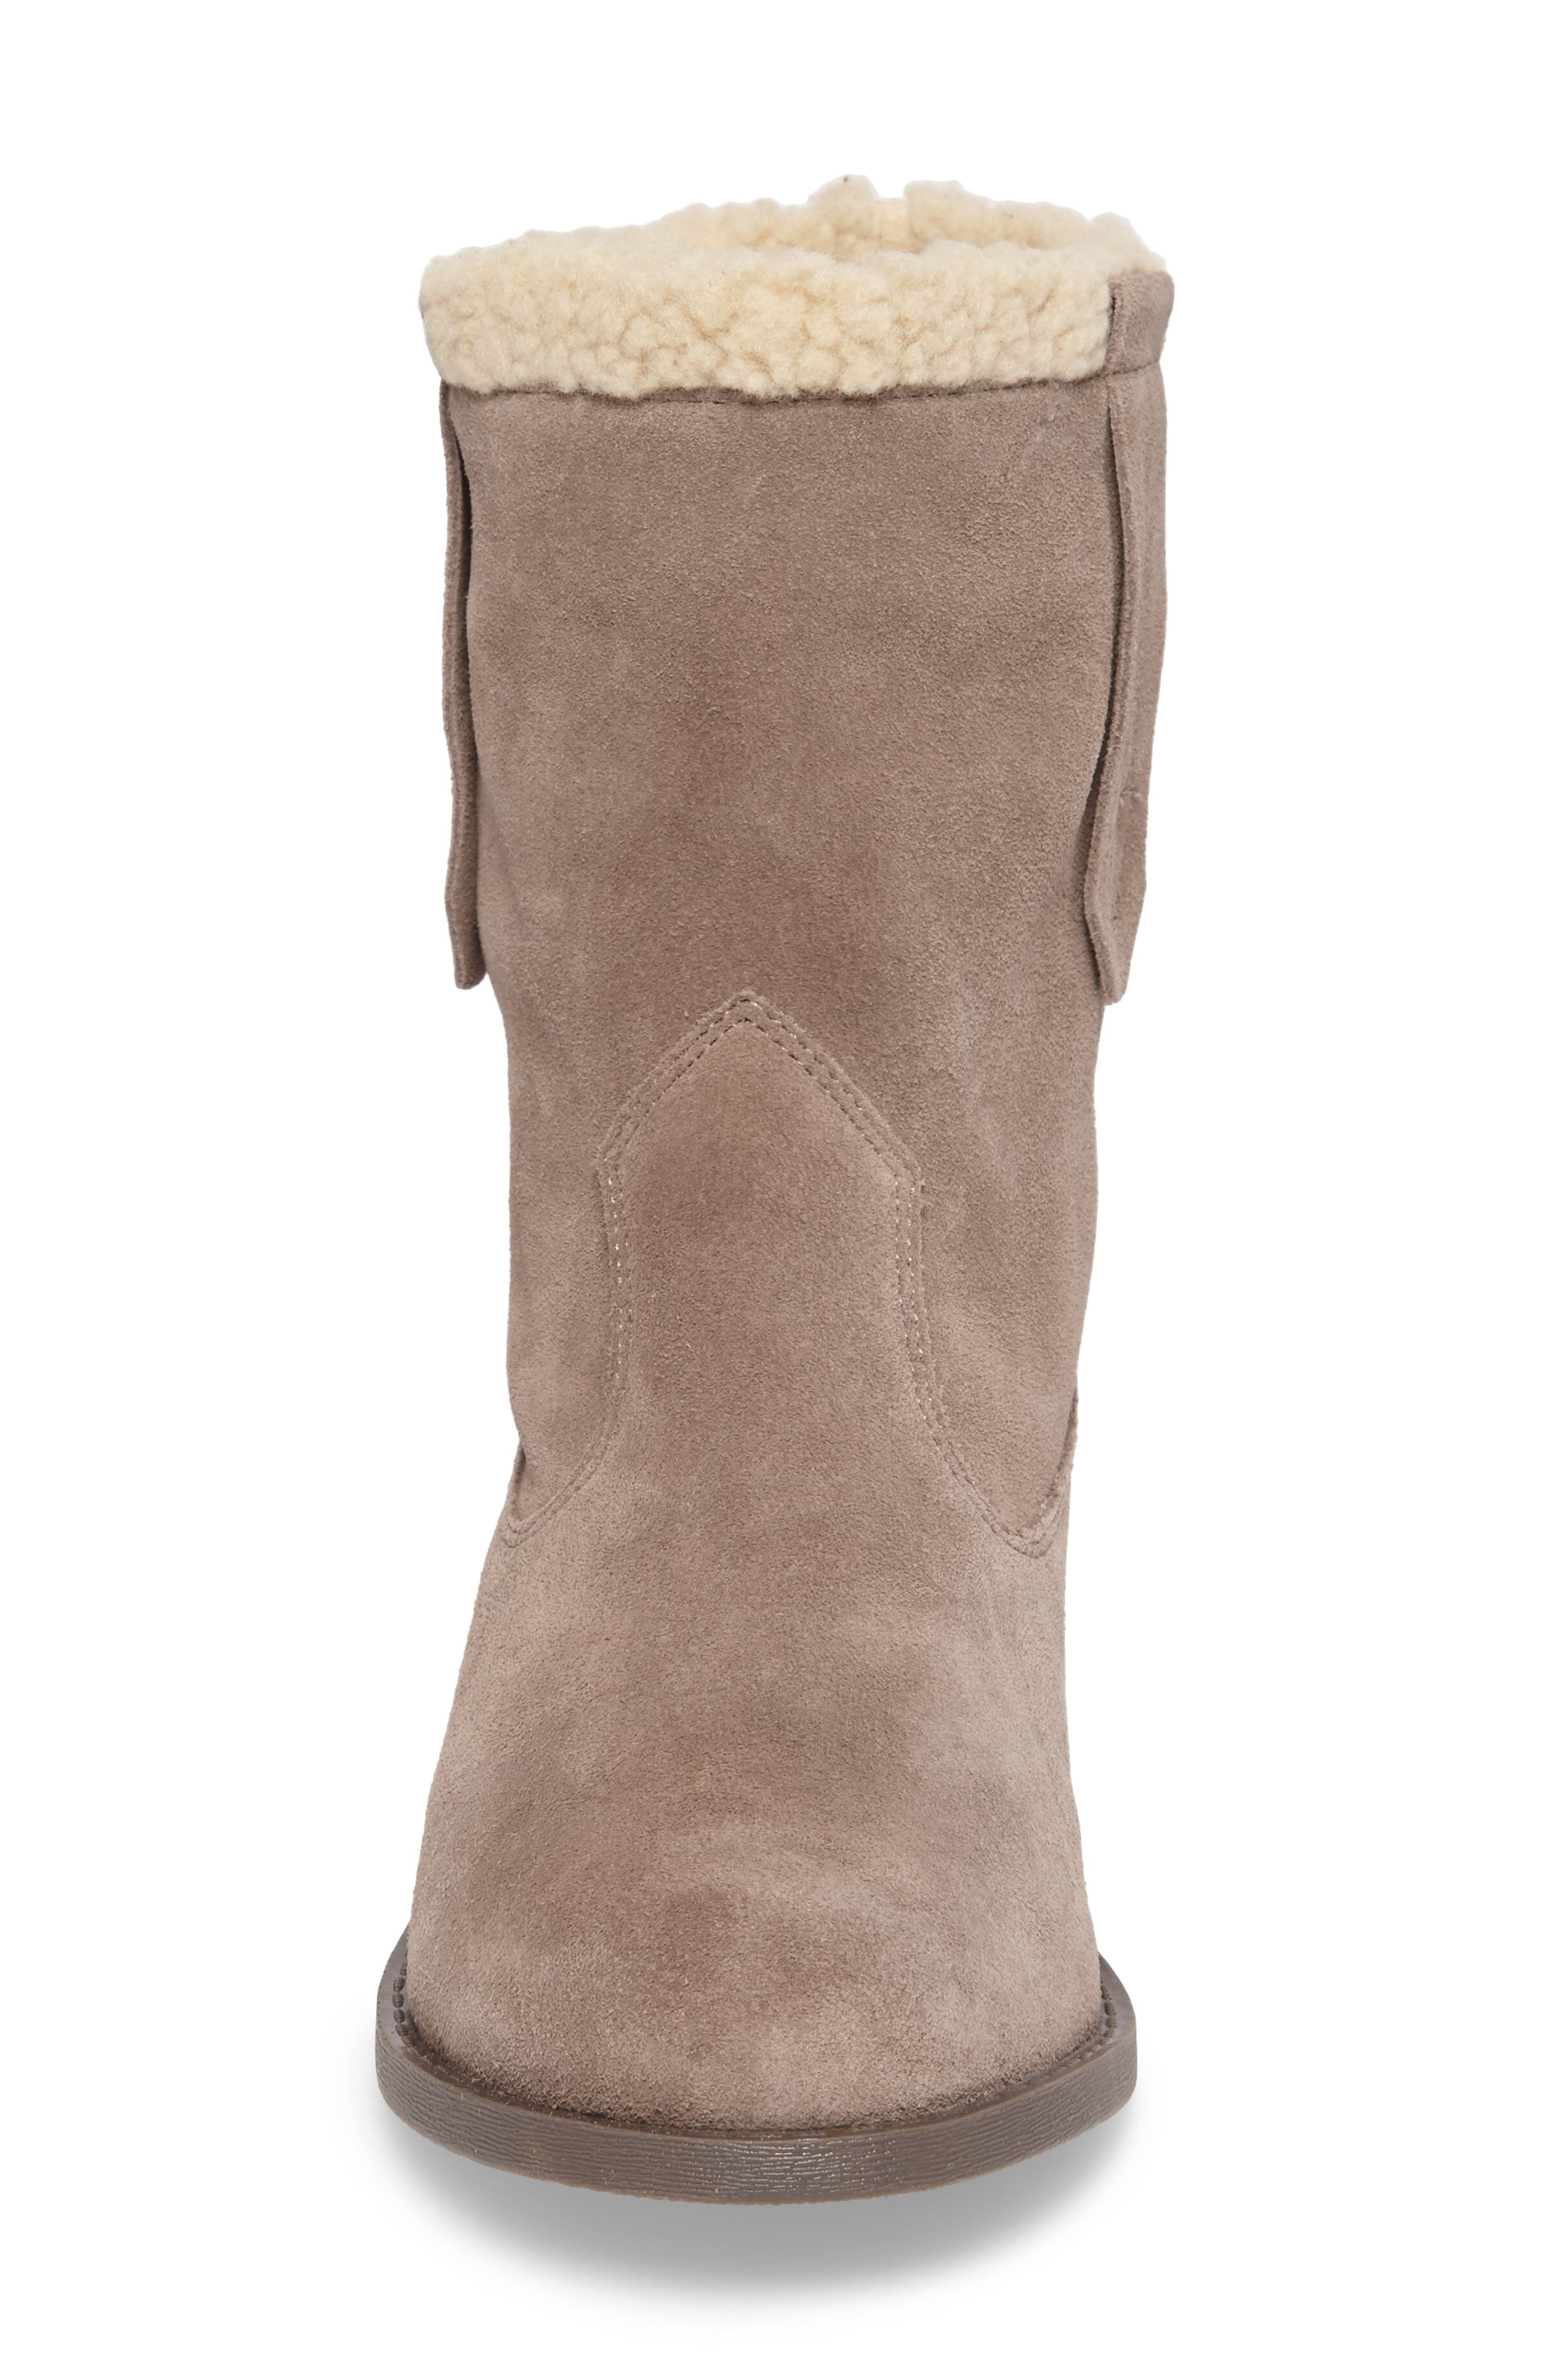 SOLE SOCIETY, Verona Faux Shearling Boot, Alternate thumbnail 4, color, DARK MUSHROOM SUEDE